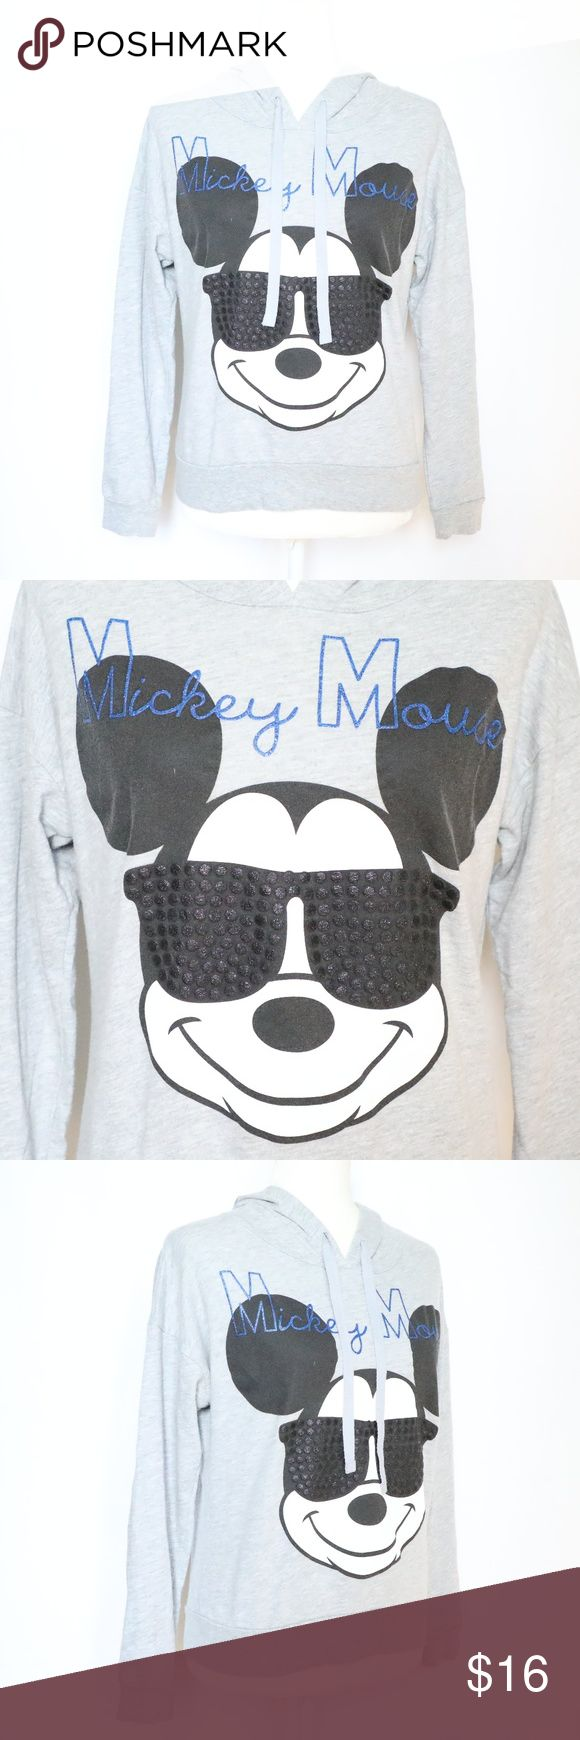 Disney Mickey Mouse Pullover Hooded Sweater S Disney Mickey Mouse Pullover Hoodie Lightweight Sweater Grey  Small Disney Tops Sweatshirts & Hoodies